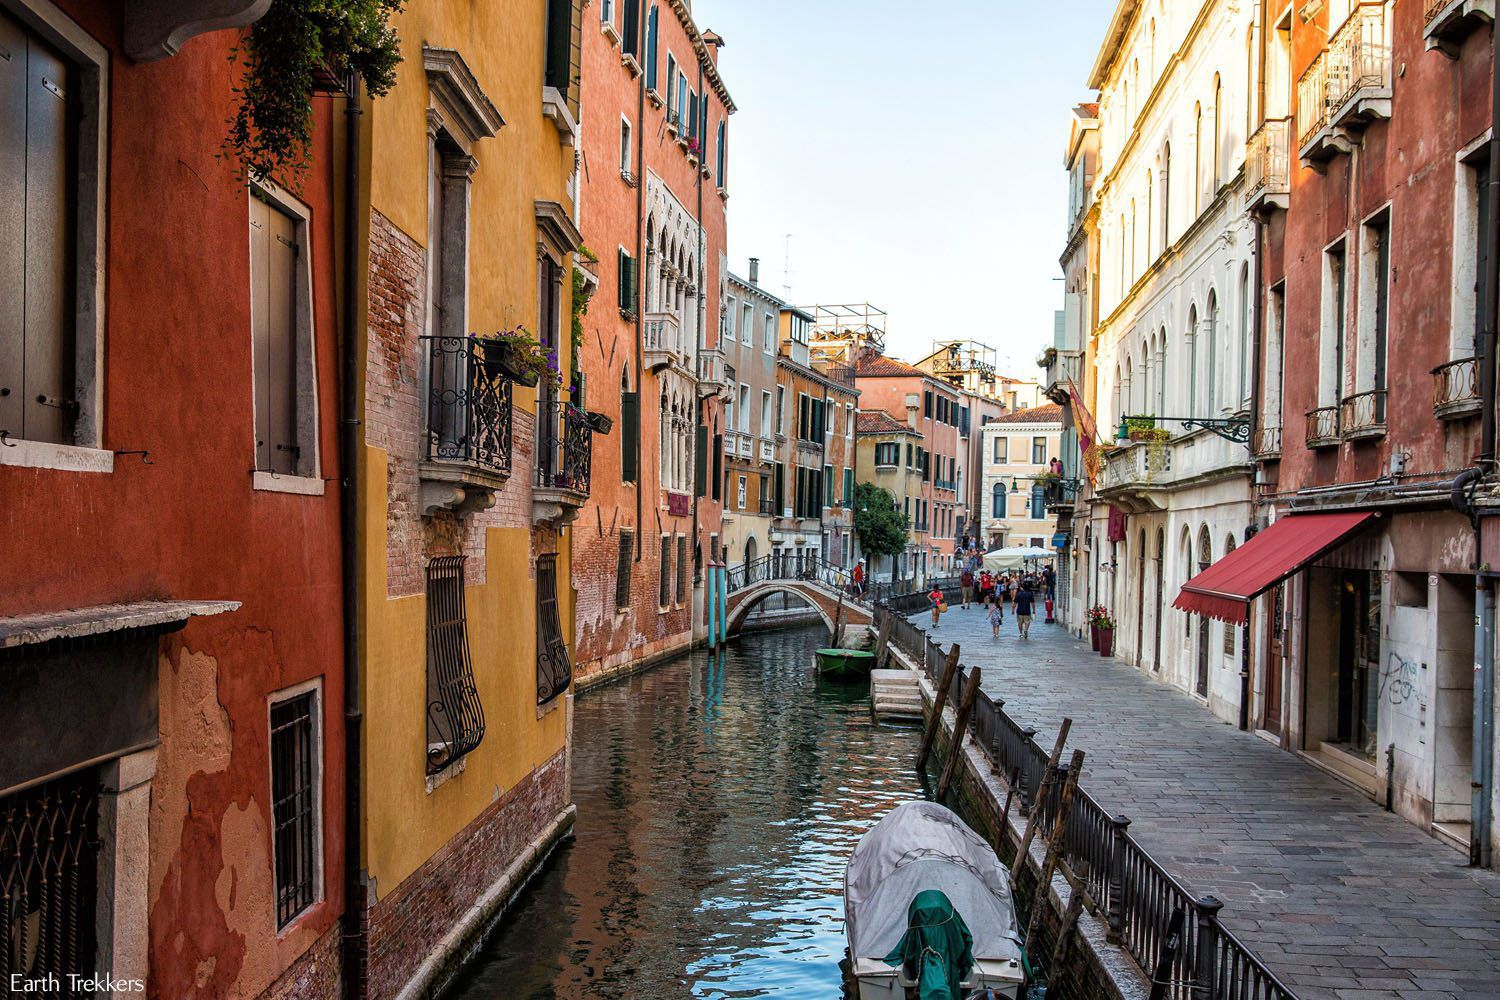 The canals of Venice by Gandola